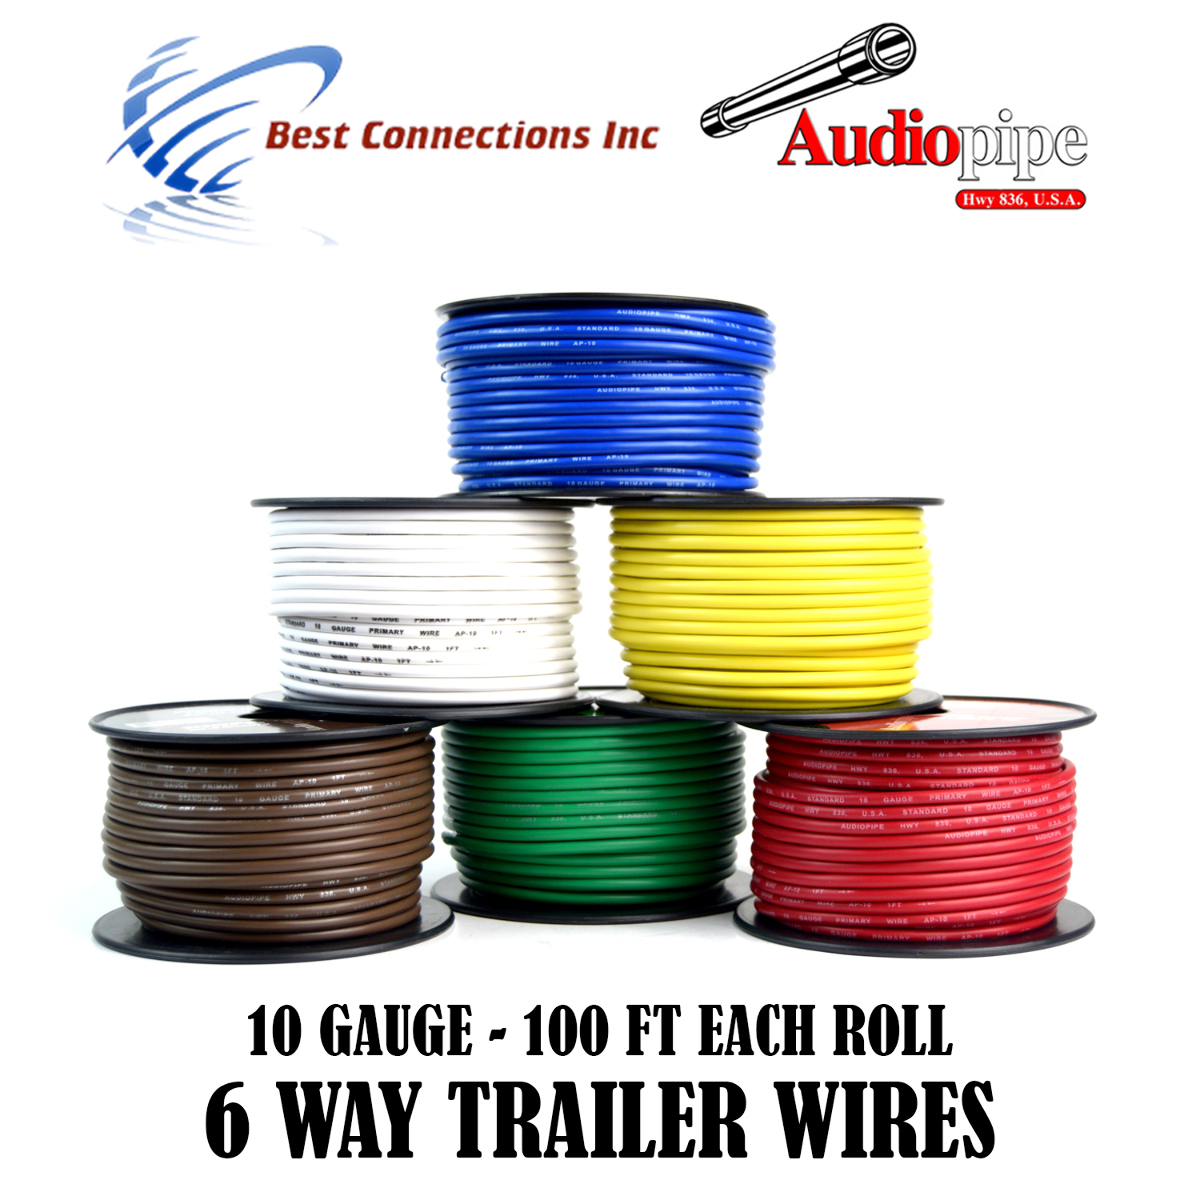 hight resolution of 6 way trailer wire light cable for harness led 100ft each roll 10 gauge 6 rolls walmart com